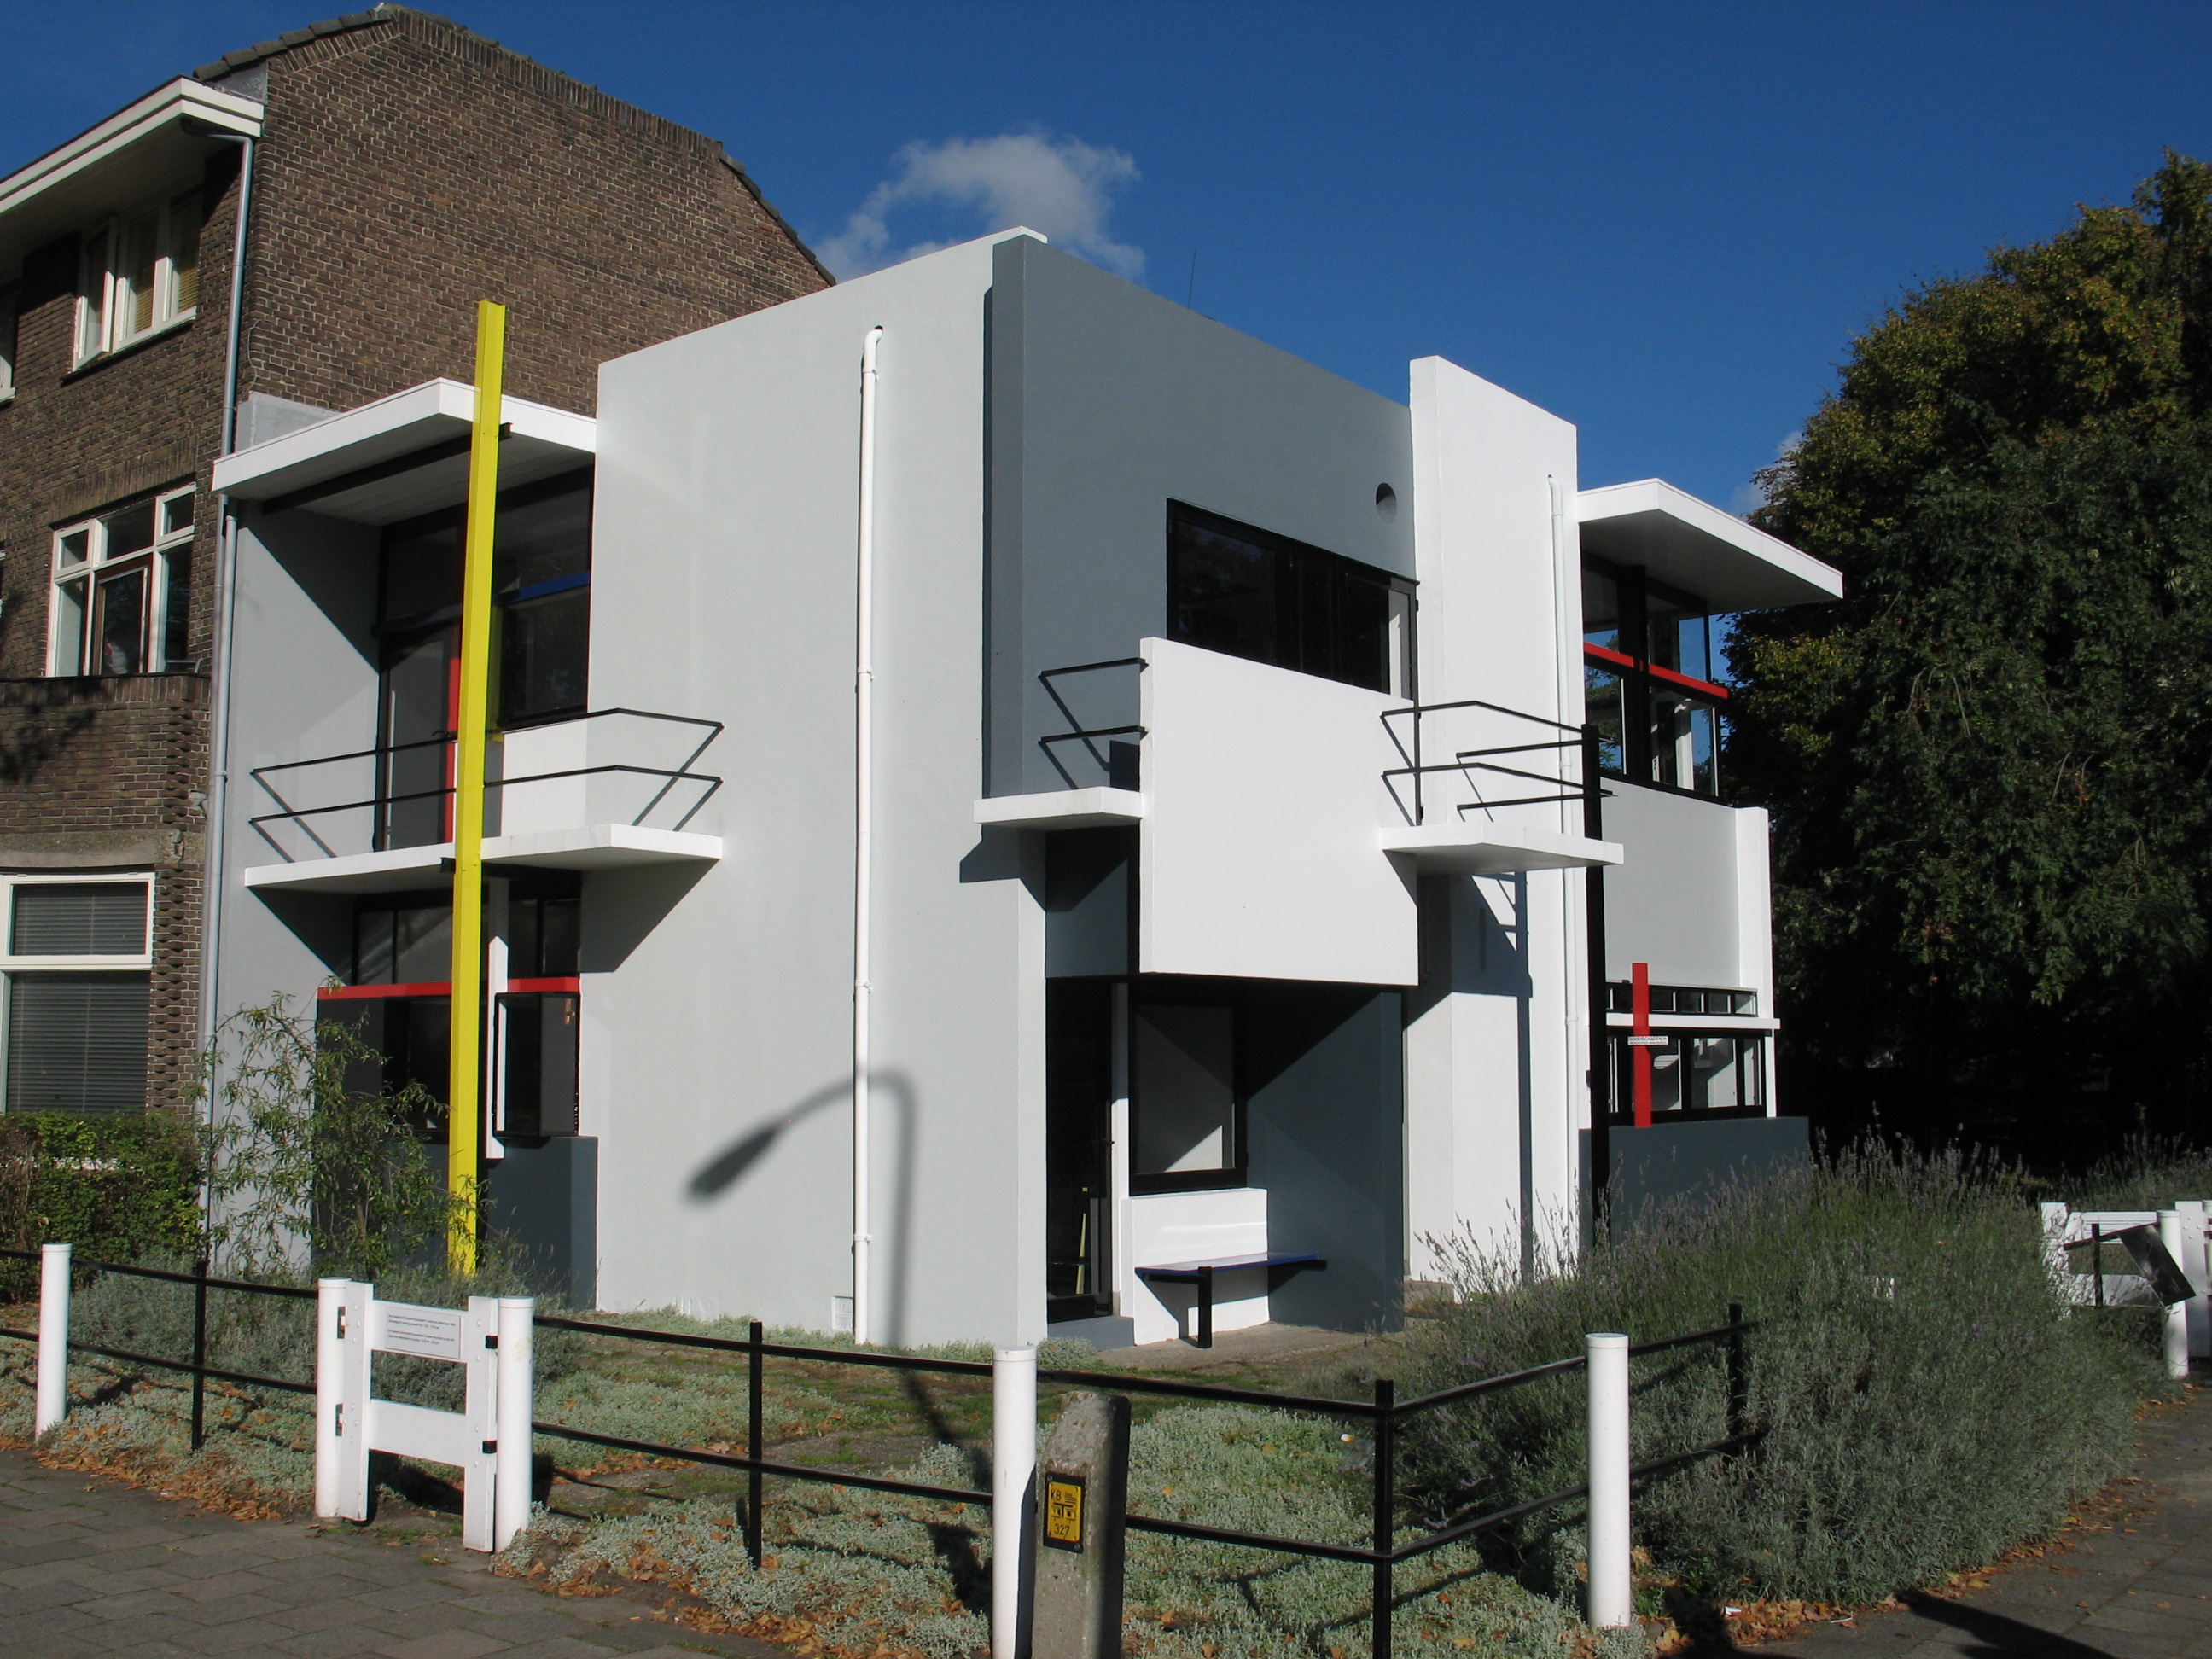 modern architecture de stijl architecture essay Architecture 5 examples of iconic modern architecture that have serious flaws from frank lloyd wright's fallingwater to philip johnson's glass house, ad surveys some of the most architecturally significant homes that were built with flaws.